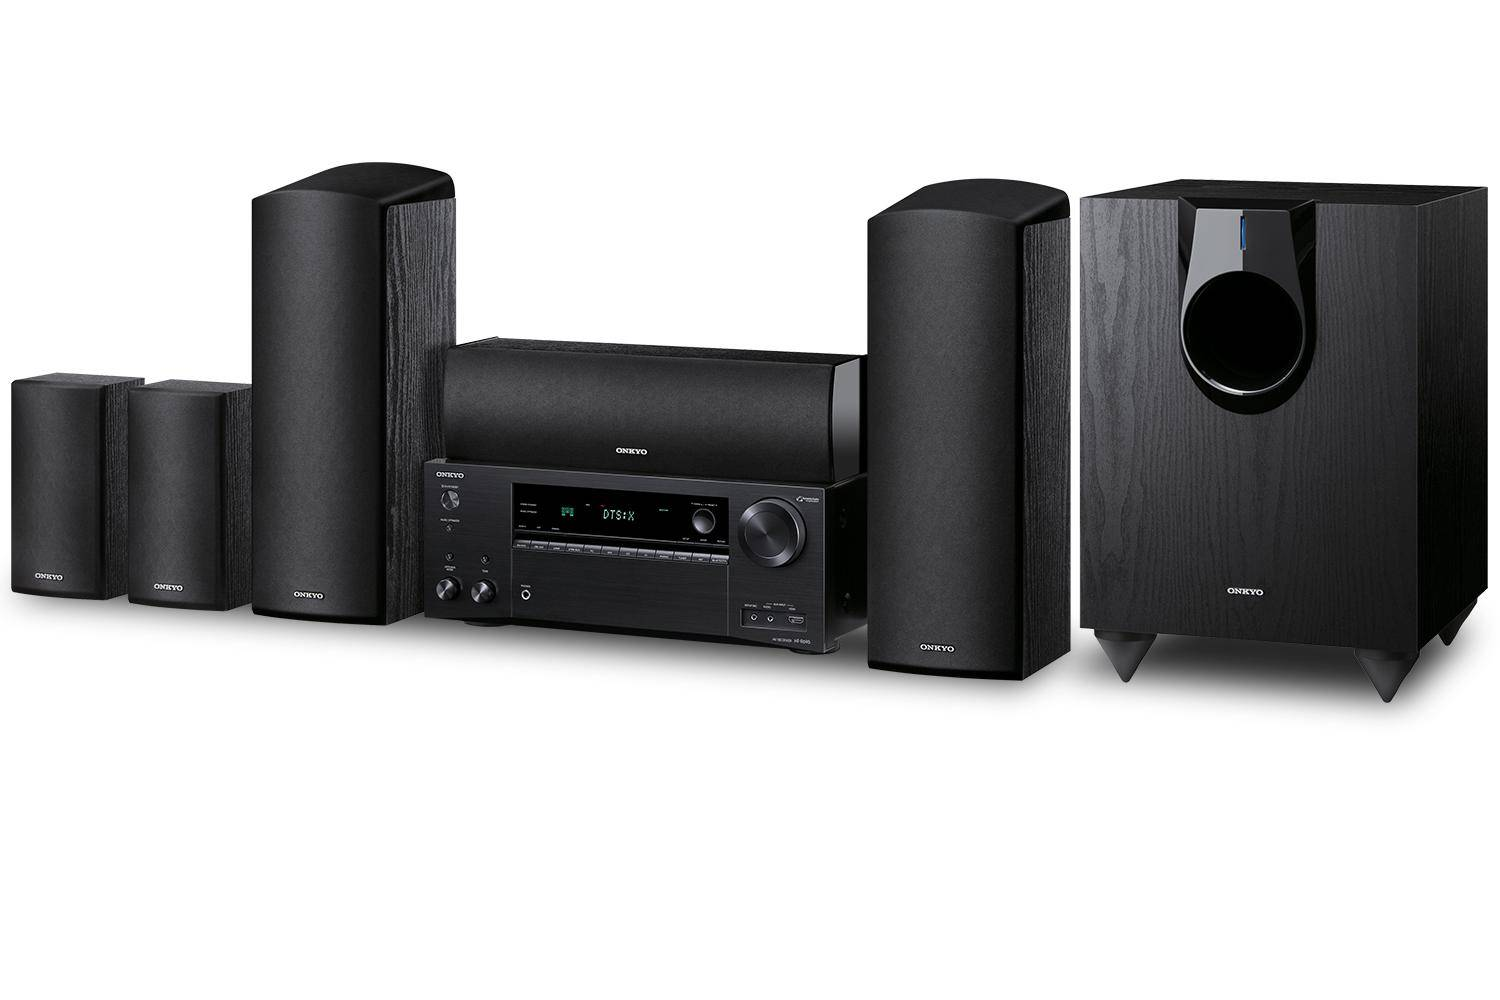 HT-S7800 ONKYO 5.1.2-Channel Dolby Atmos/DTS:X Network A/V Receiver & Speaker Package